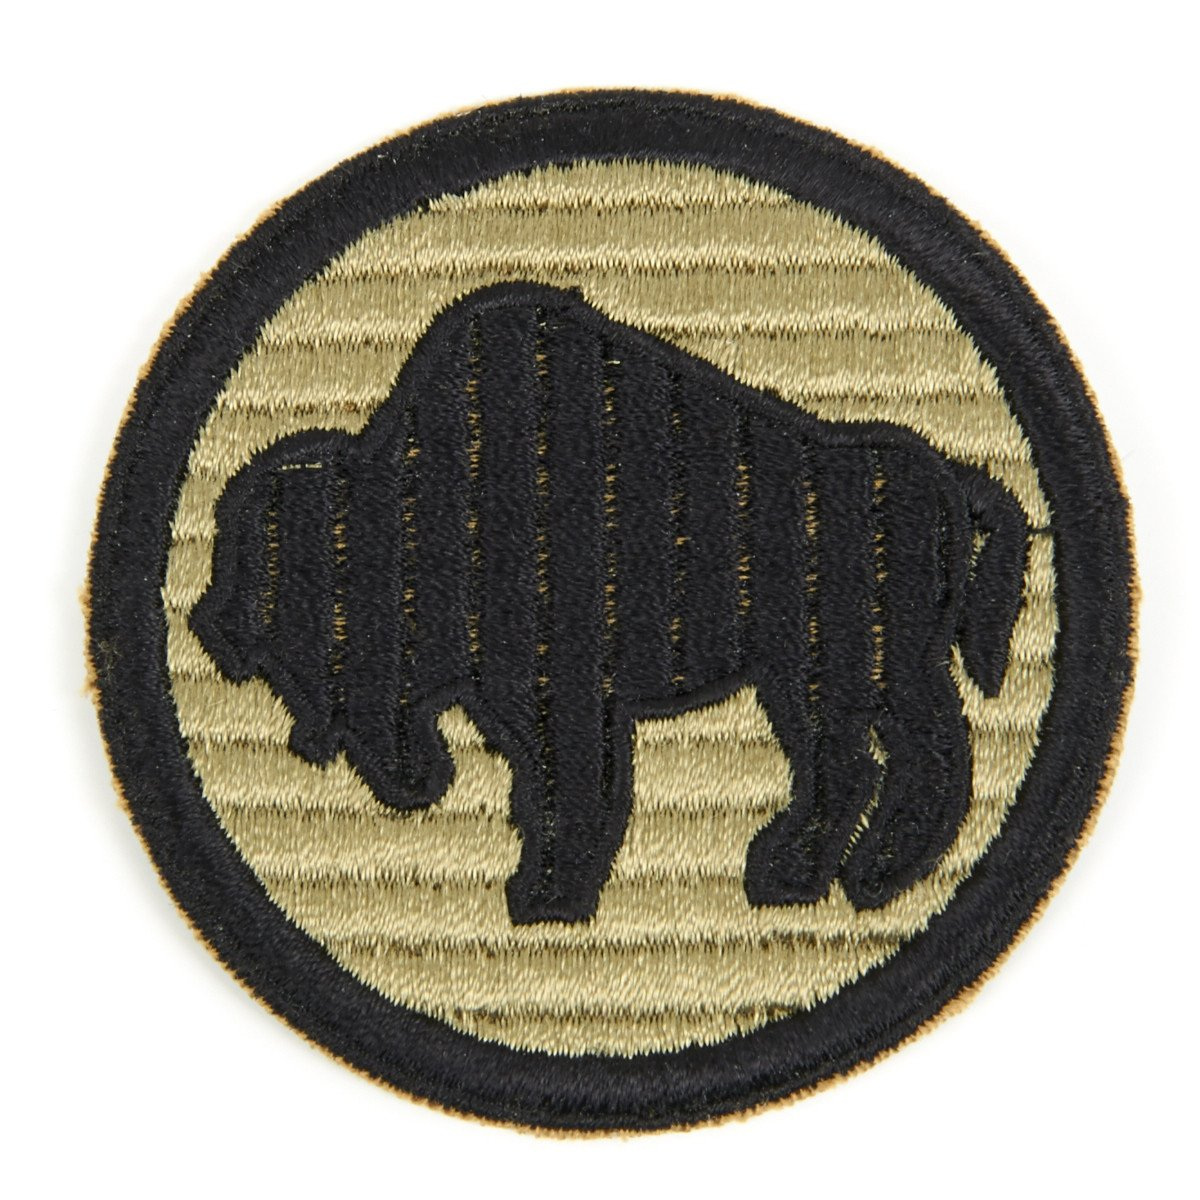 92nd Infantry Division Patch